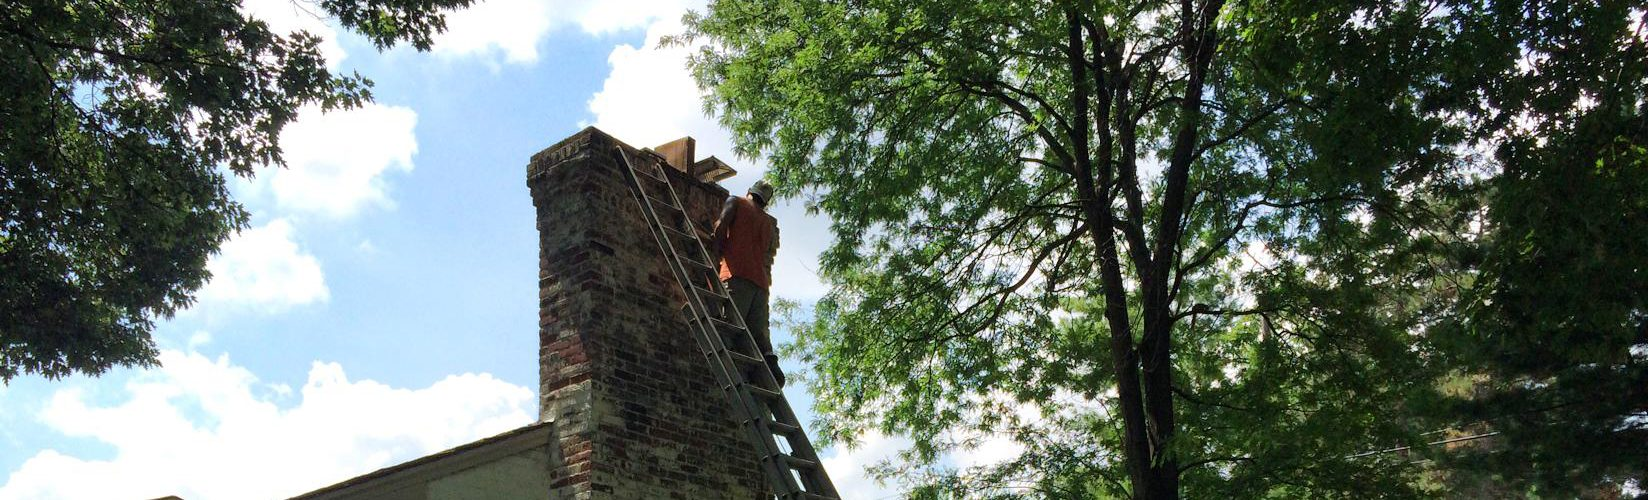 Welcome to Chimney Cricket Chimney Sweeps, Service, Pittsburgh, PA